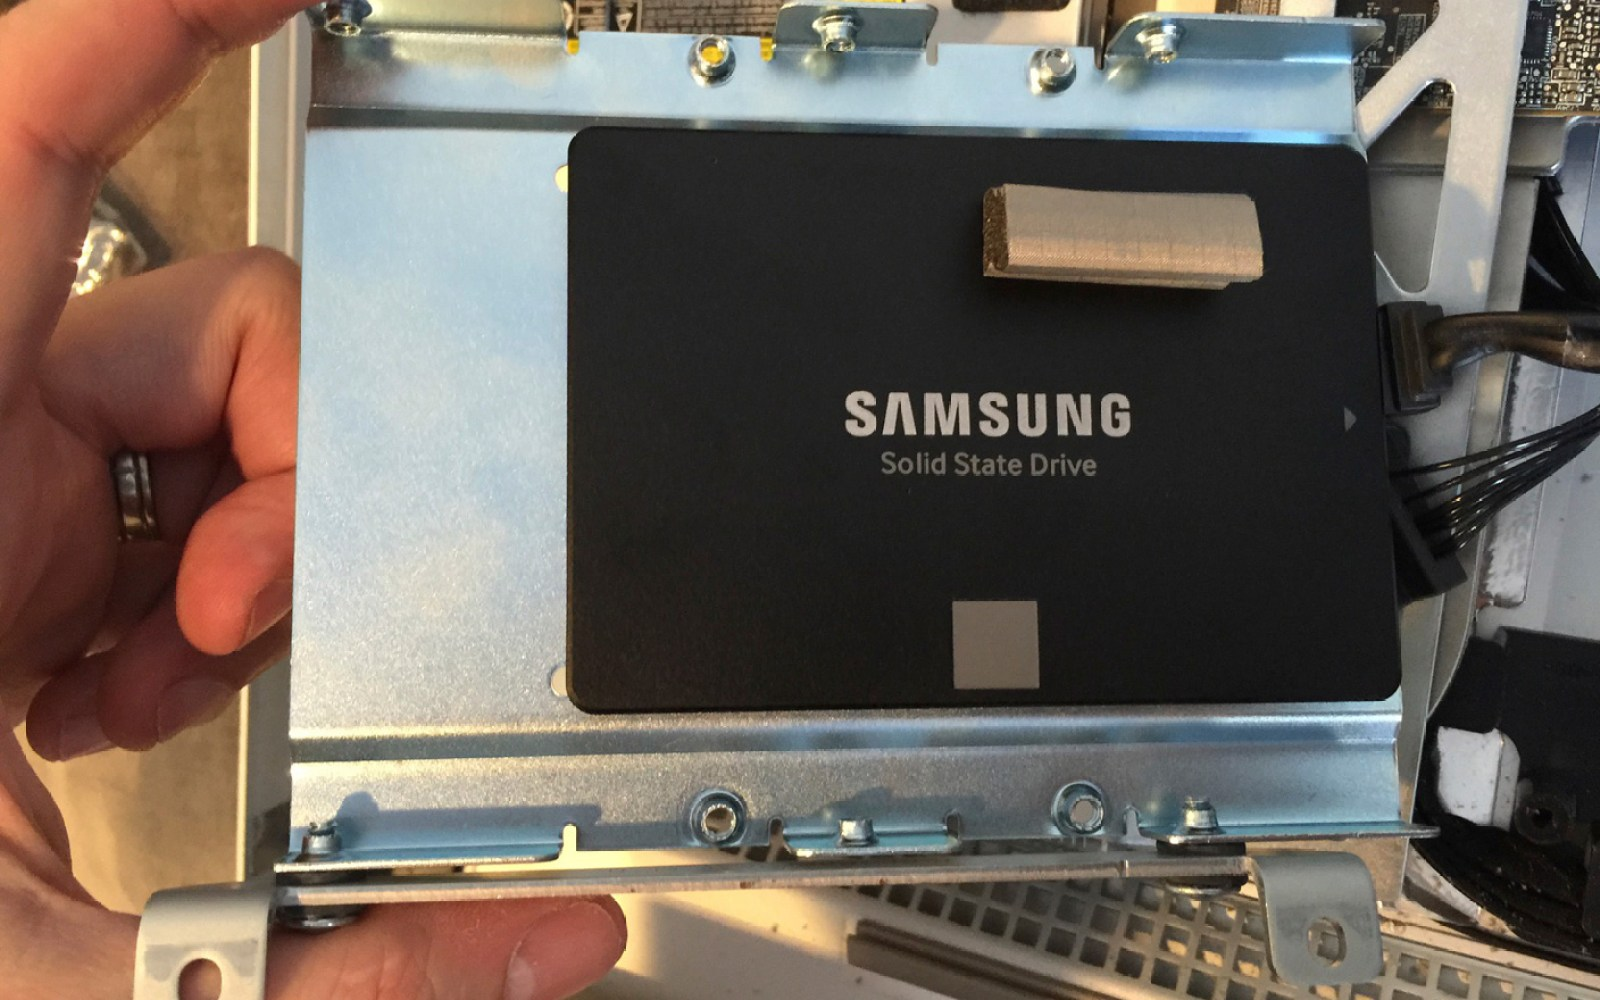 How-To: Now's the right time to swap your old iMac's hard drive for a fast new SSD